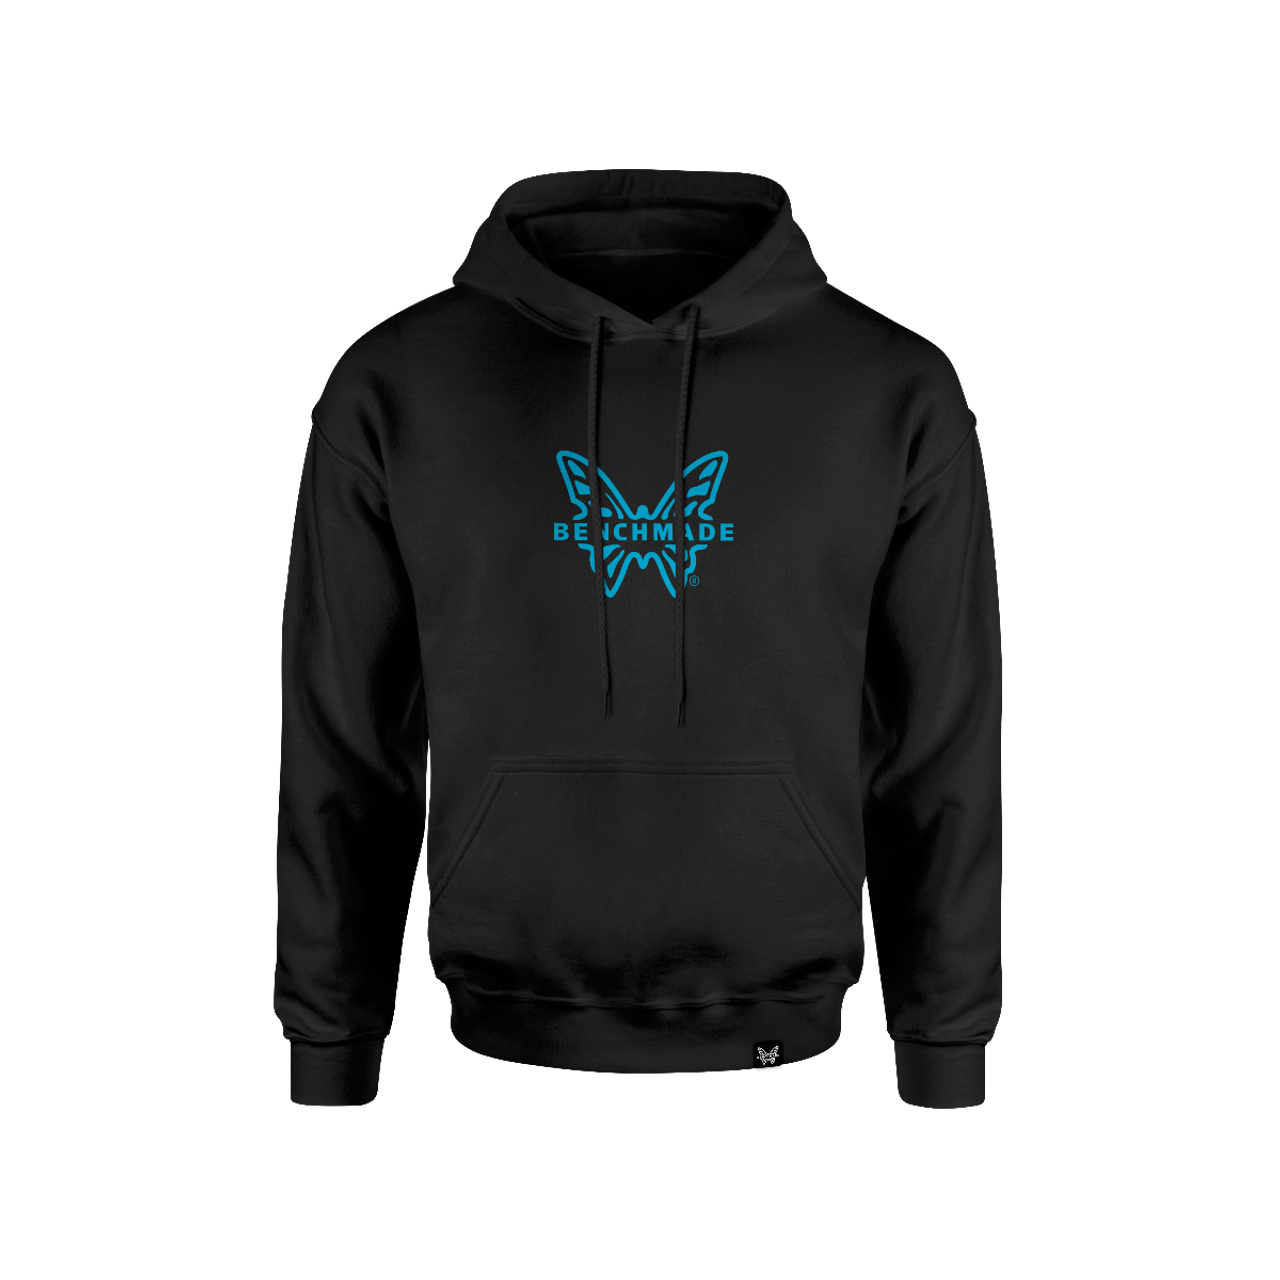 Benchmade Men's Favorite Hoodie Black, Large